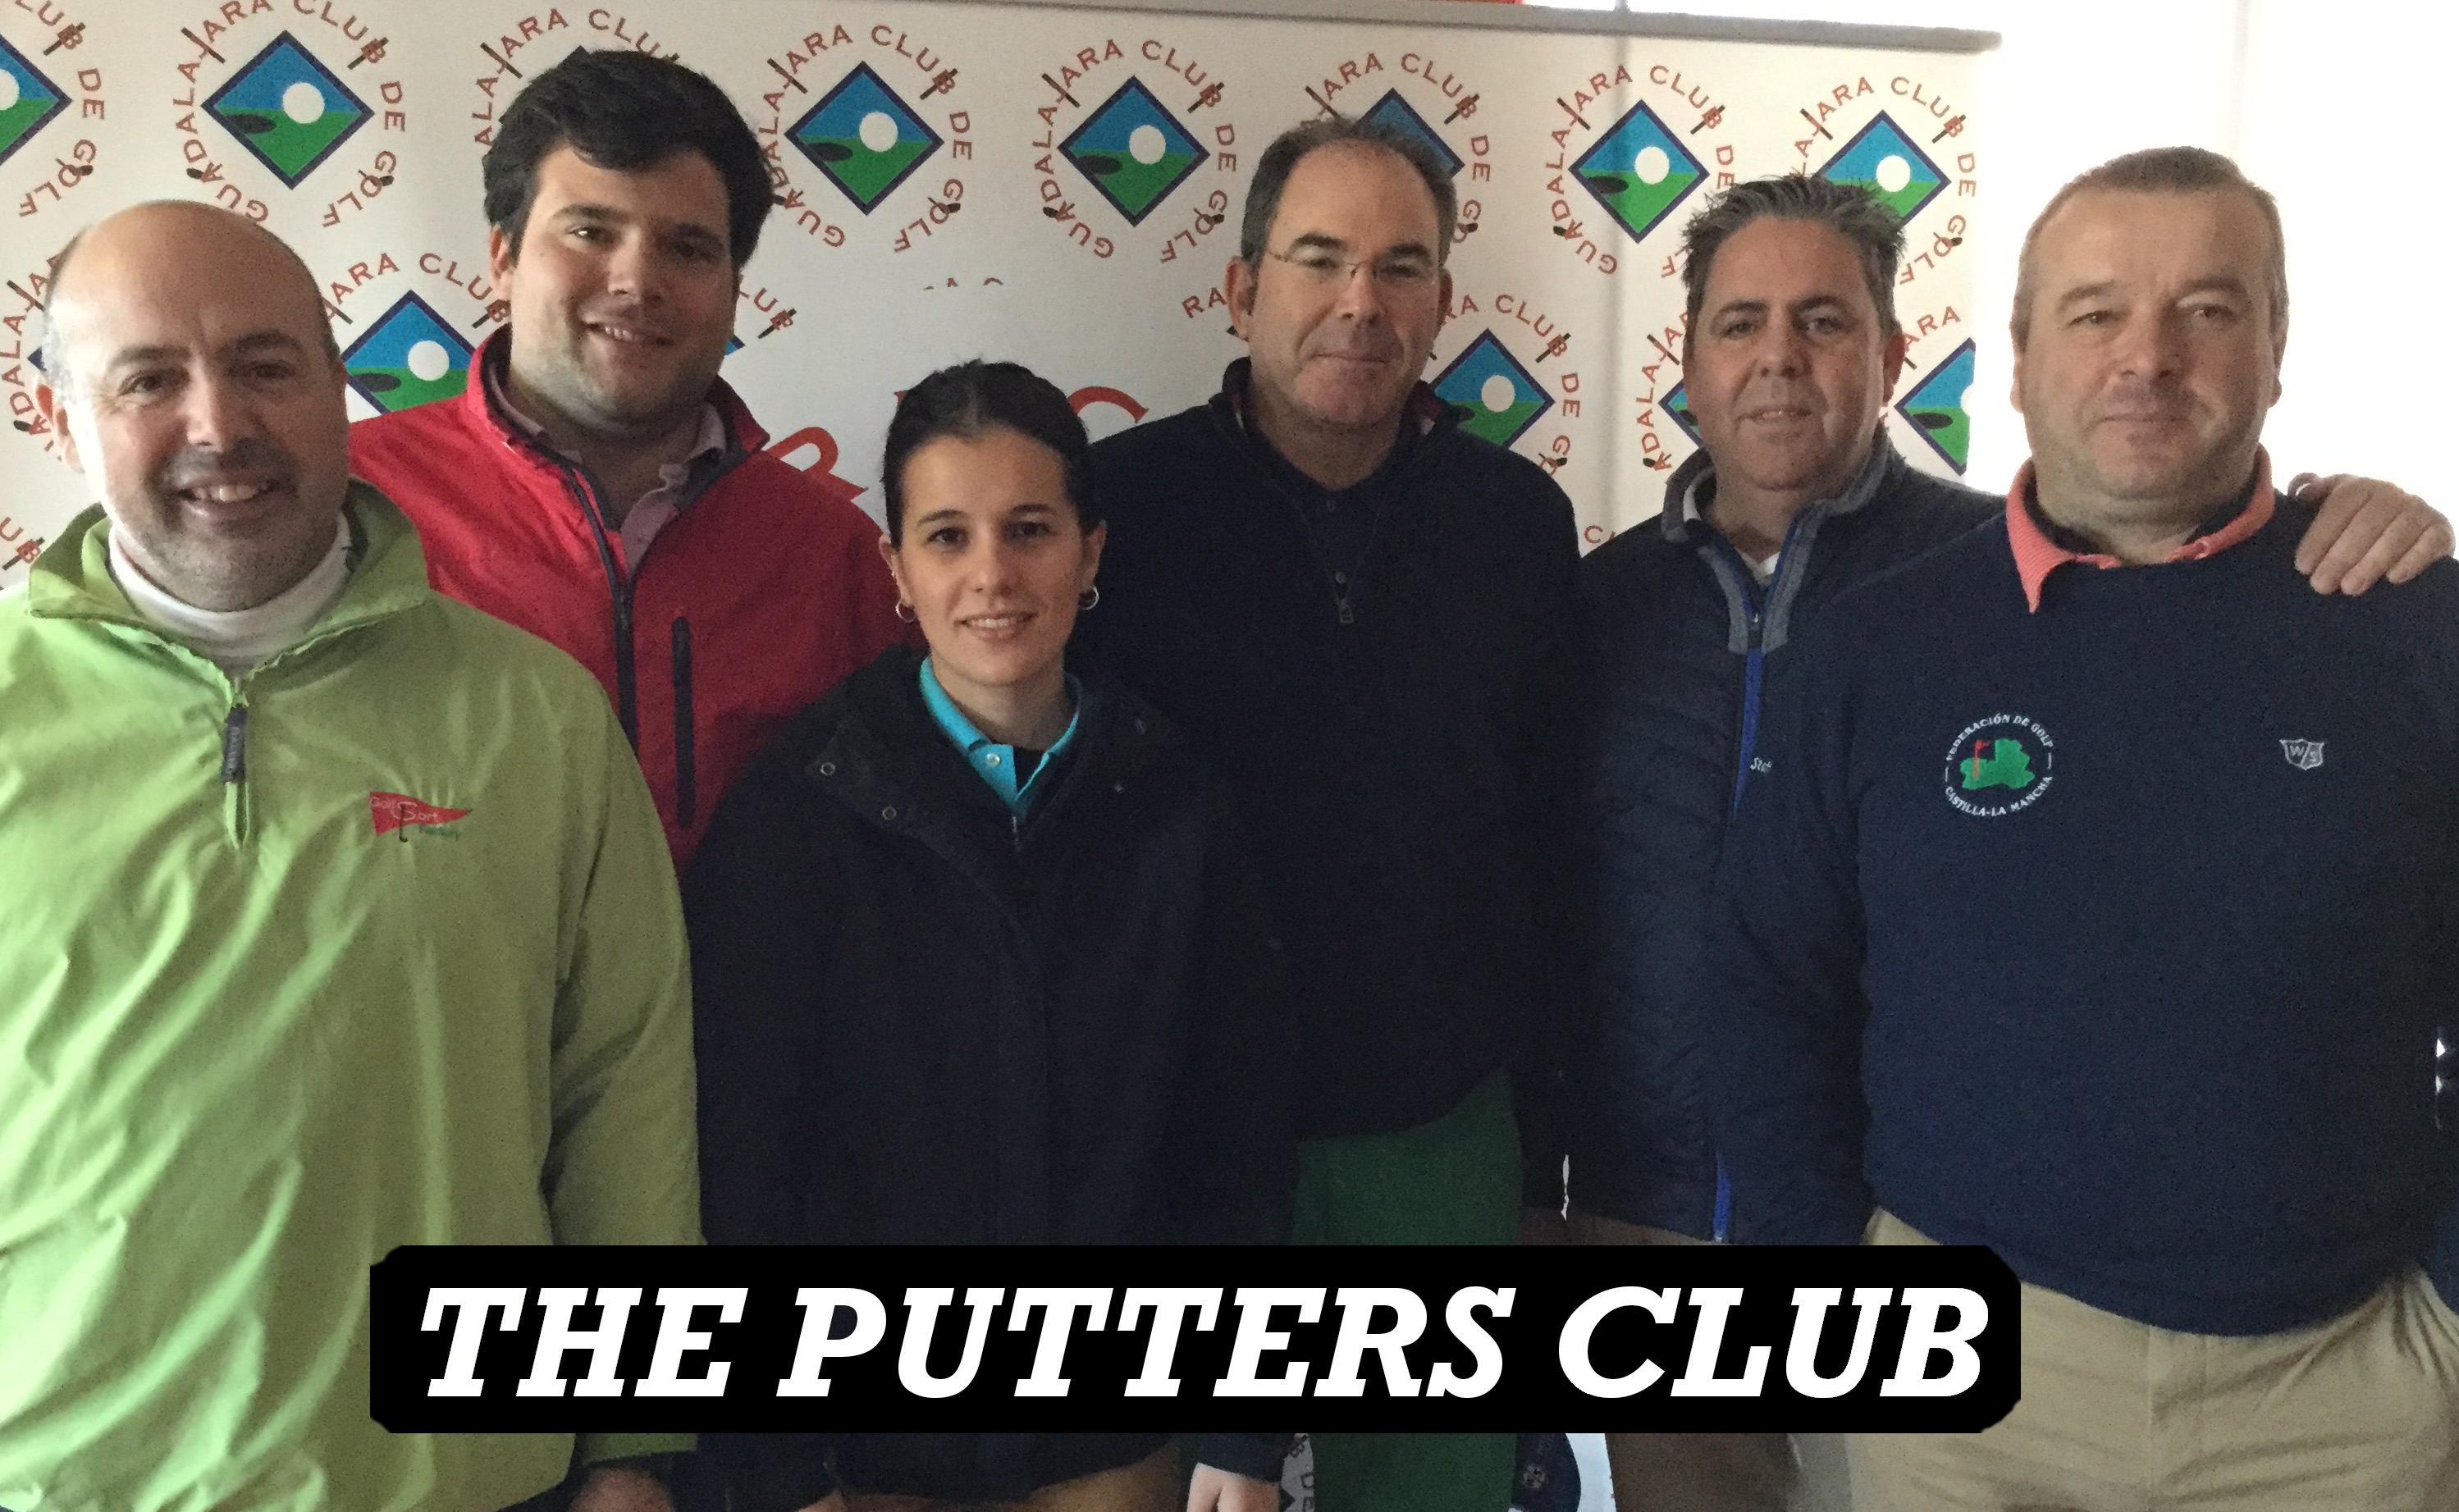 The Putters Club